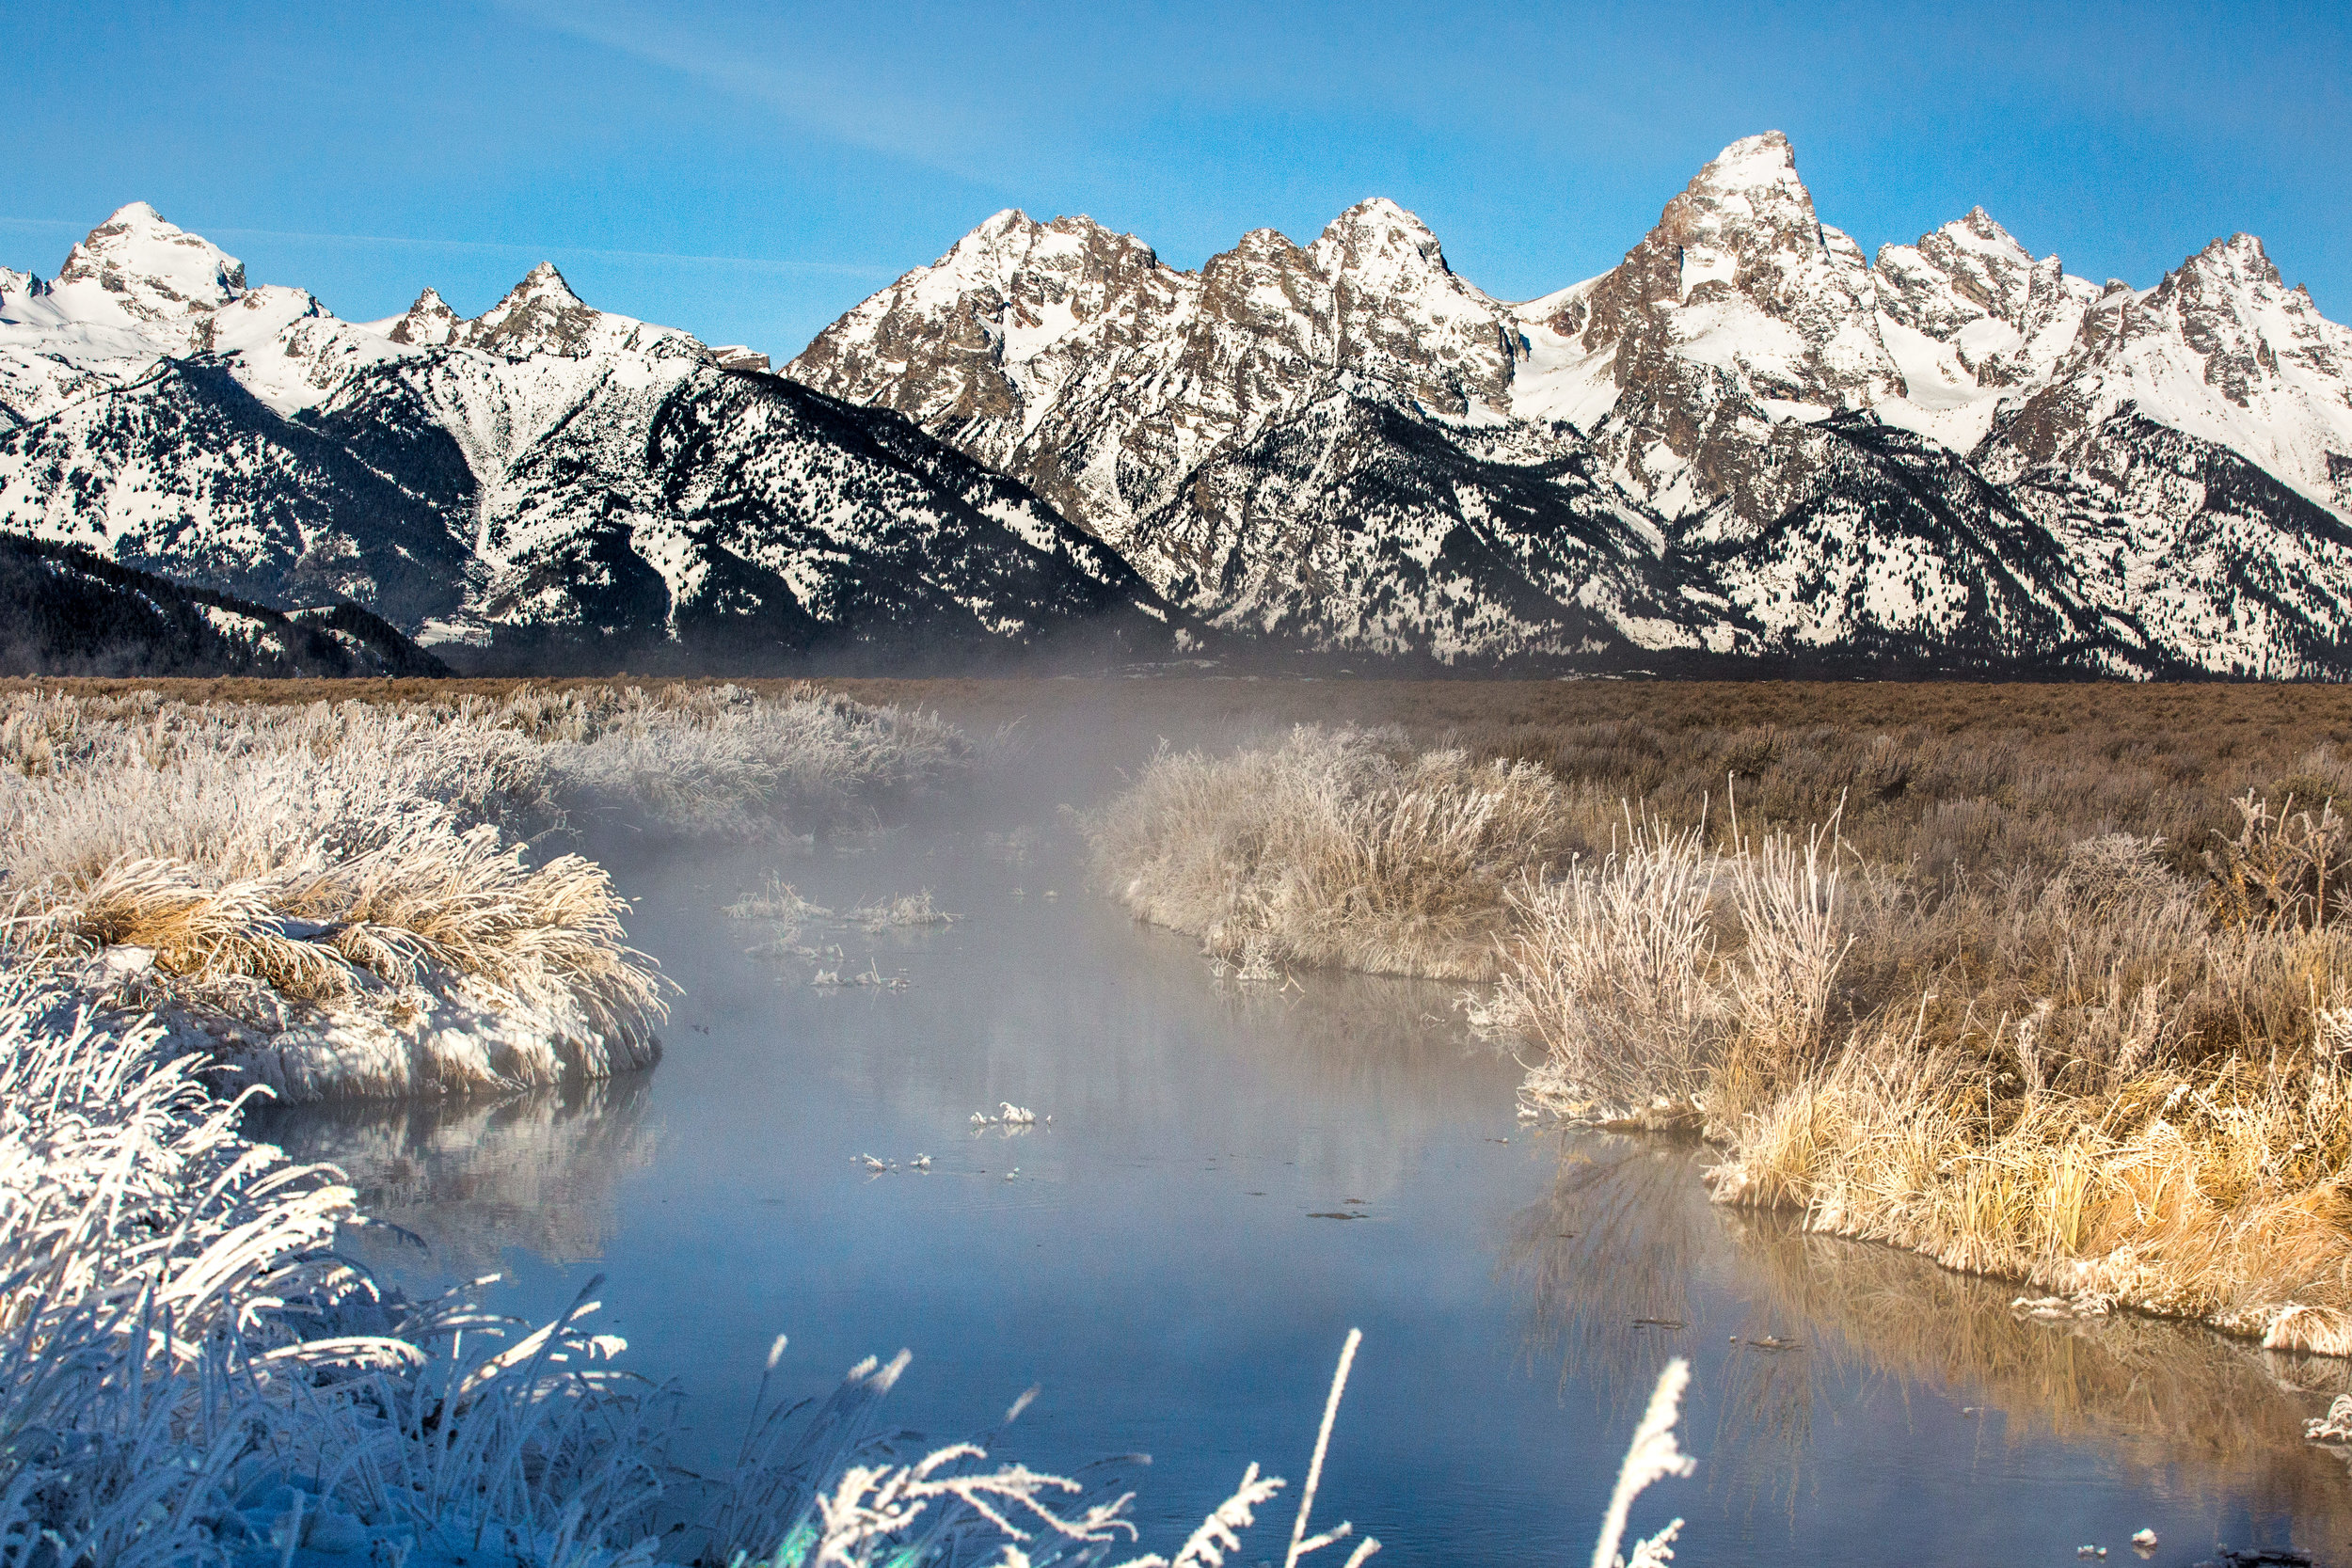 nicole-daacke-photography-jackson-hole-grand-teton-national-park-elopement-wedding-photographer-adventurous-engagement-session-grand-tetons-snow-visit-itinerary-for-jackson-hole-wyoming-9736.jpg